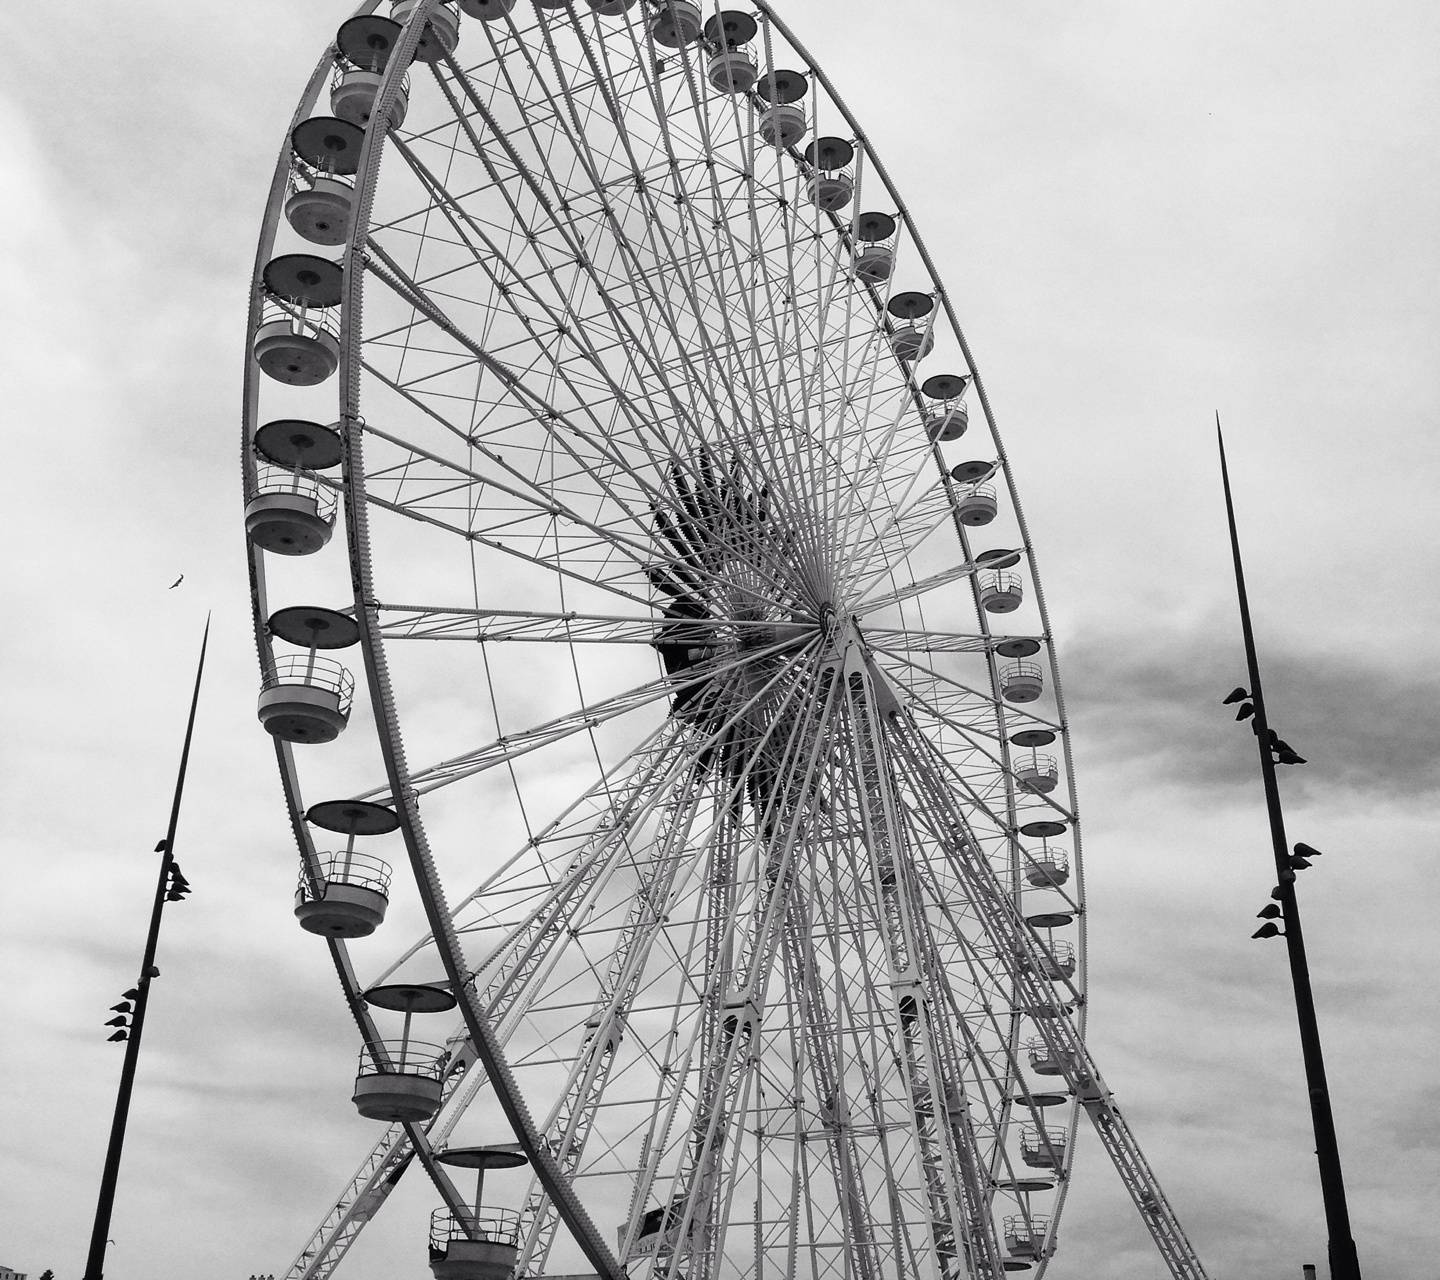 The wheel of France